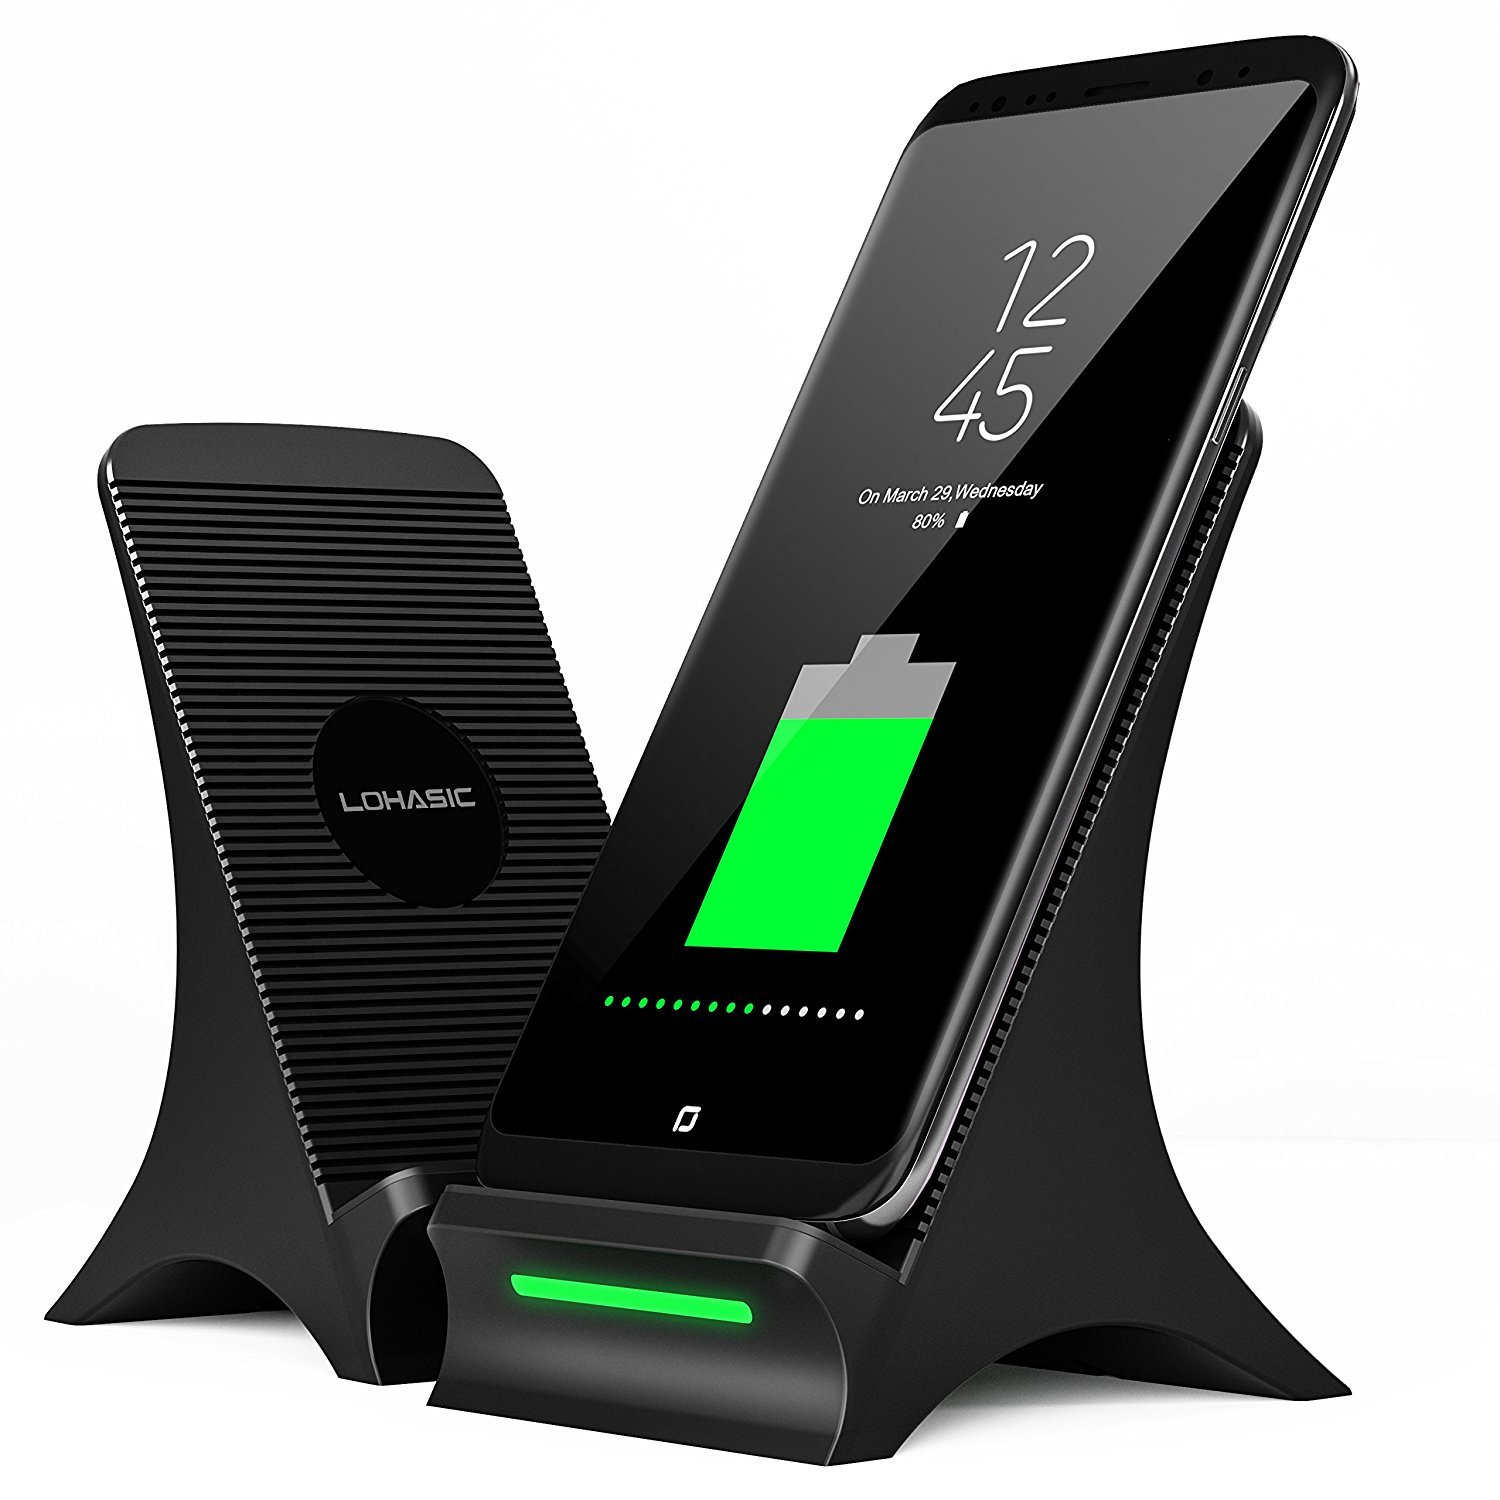 Fast Wireless Charger, Wireless Charger with Cooling Fan Stand Pad Mat Wireless Charger for iPhone X 8 Plus Samsung Galaxy S8 Plus S7 S6 Edge Plus Note 8 5 Nexus 6/7, No AC Adapter